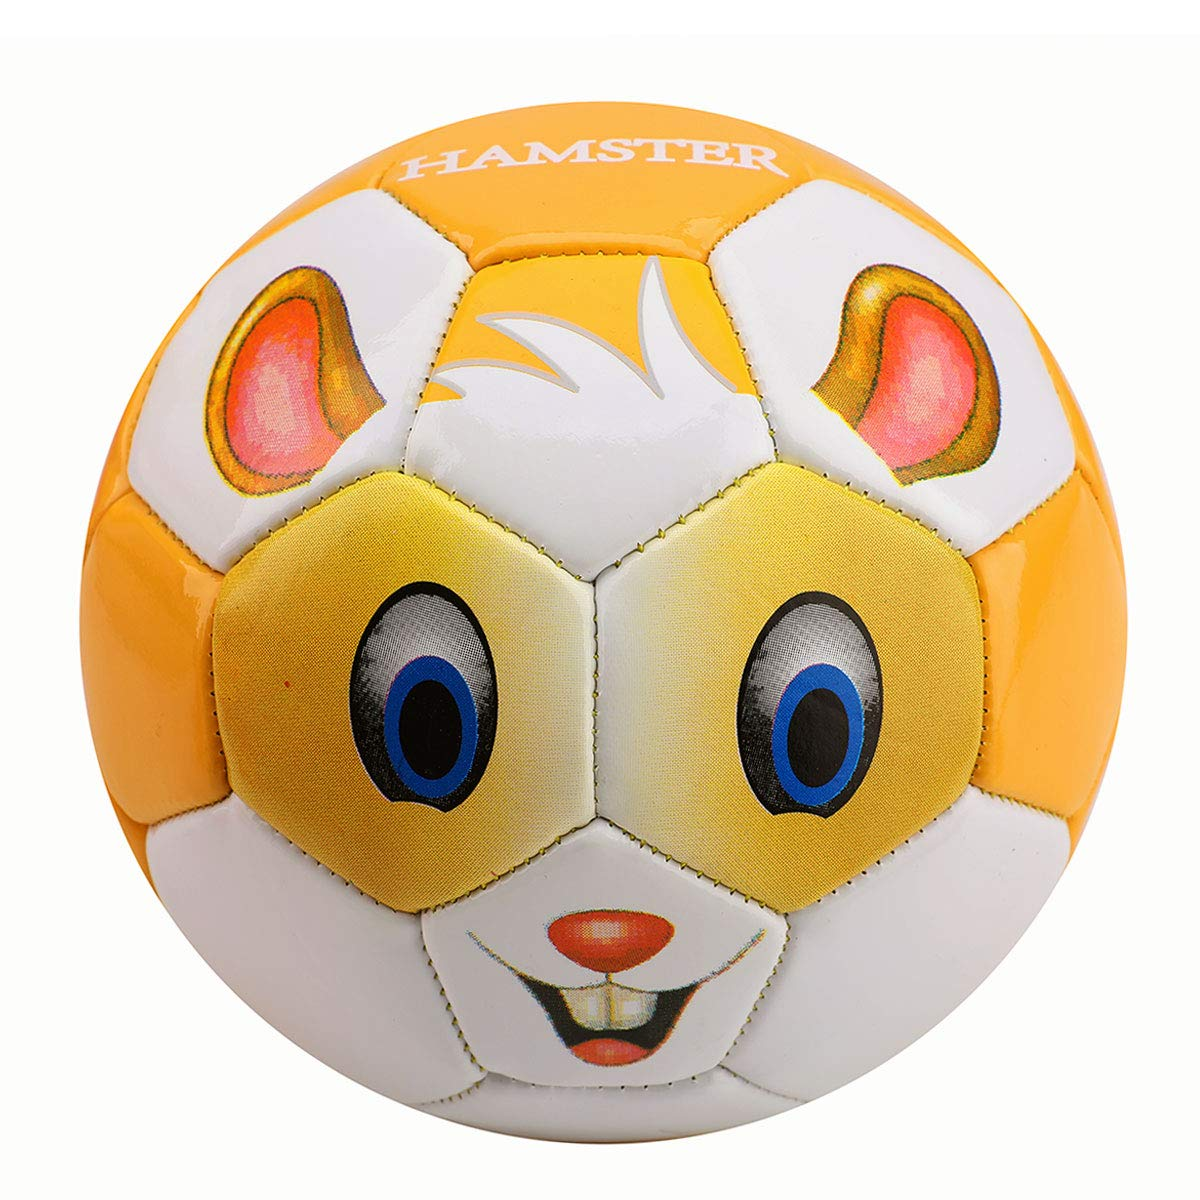 EVERICH TOY Soccer Balls for Toddlers-Ball Games for Kids-Outdoor/Indoor Sport Toys by EVERICH TOY